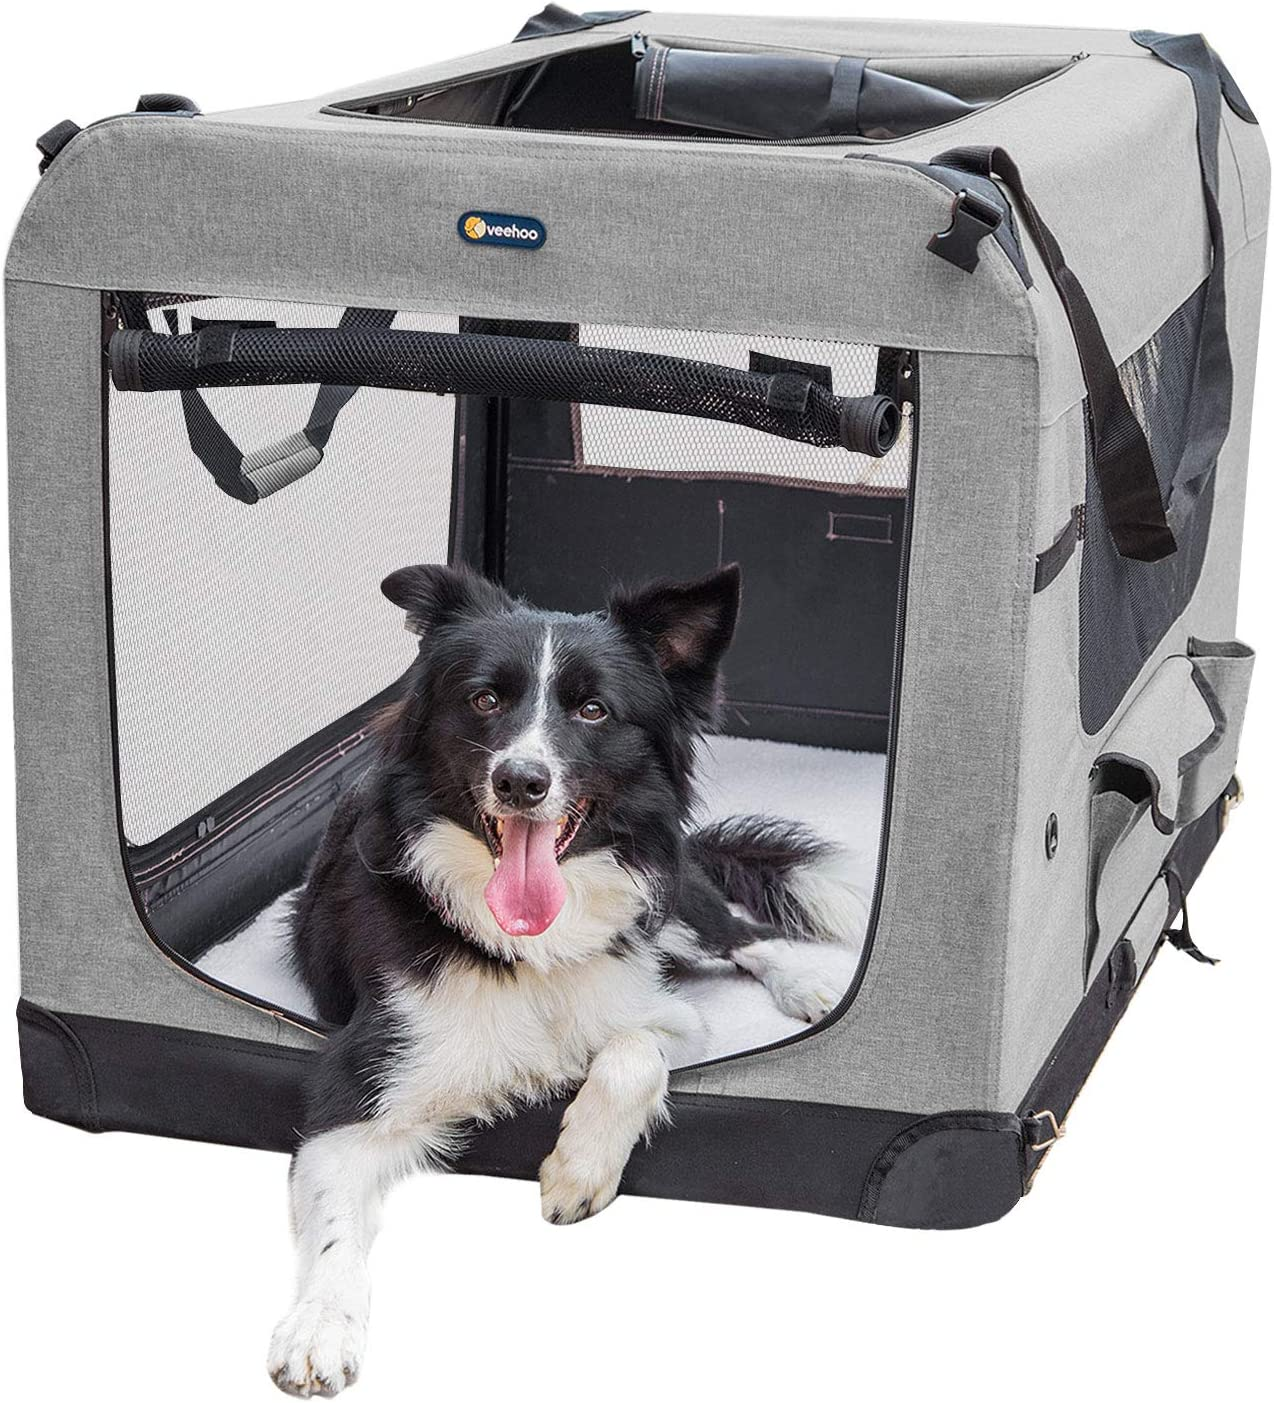 It is very Outlet SALE popular Veehoo Folding Soft Dog Crate Pet Crate-Train 3-Door Kennel for